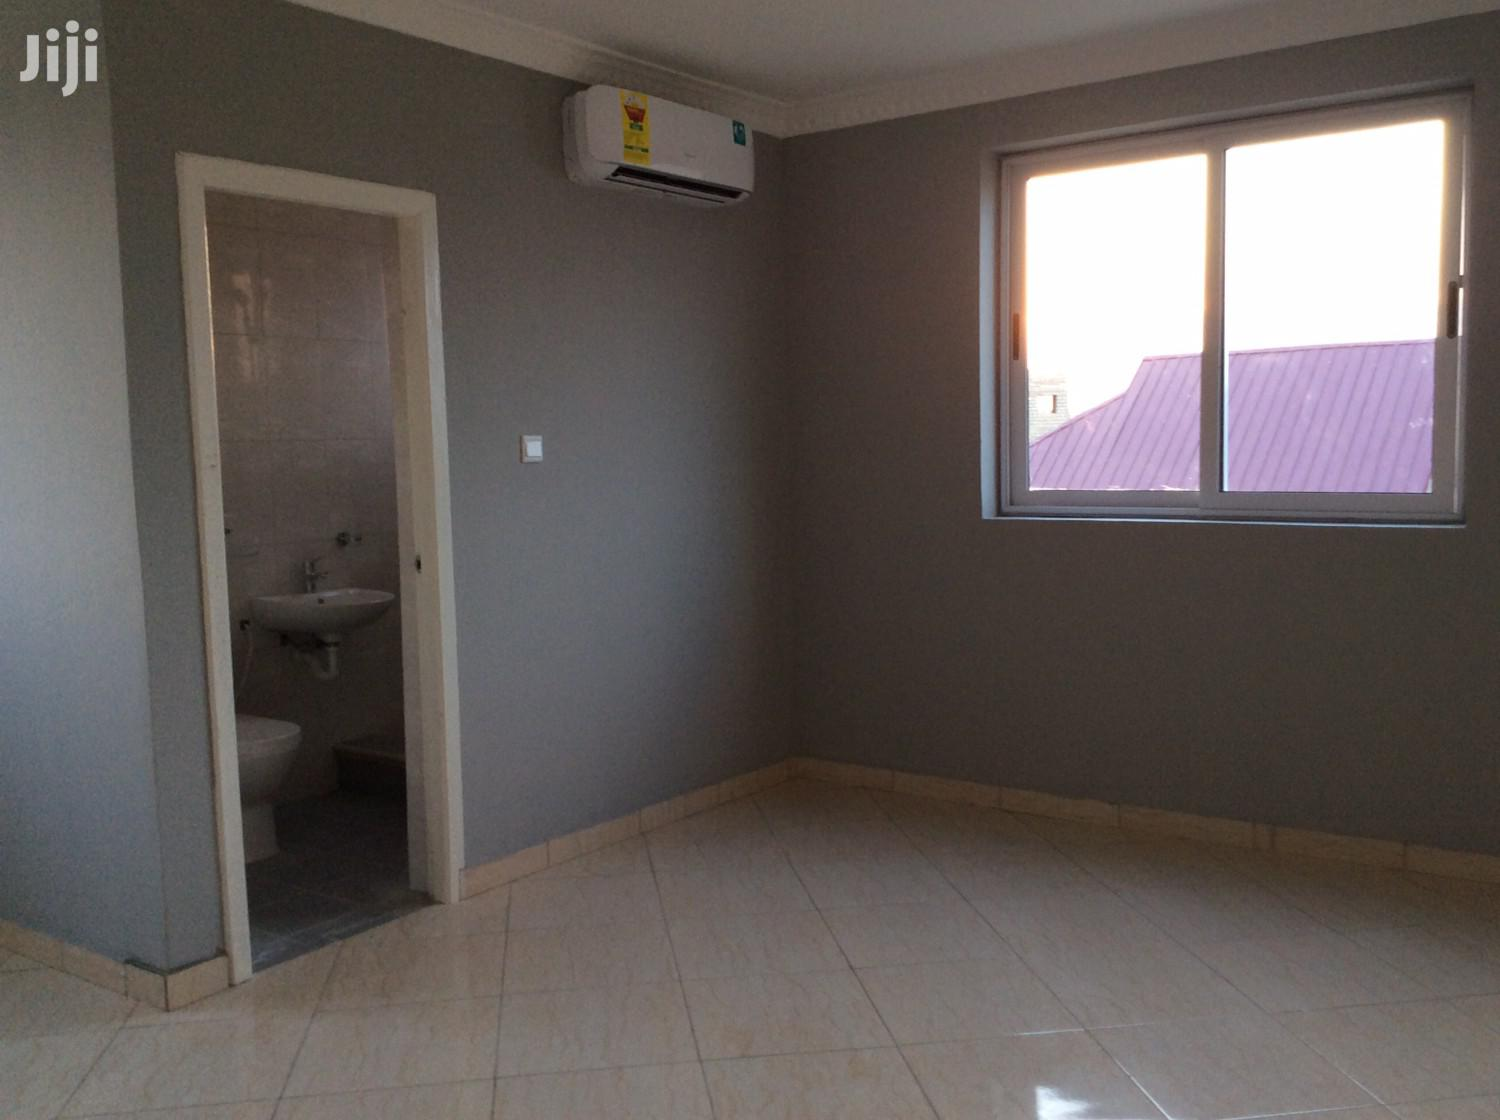 Studio Apartment 4 Rent, 1 Year Adv Tseado Airport Hills | Houses & Apartments For Rent for sale in Burma Camp, Greater Accra, Ghana